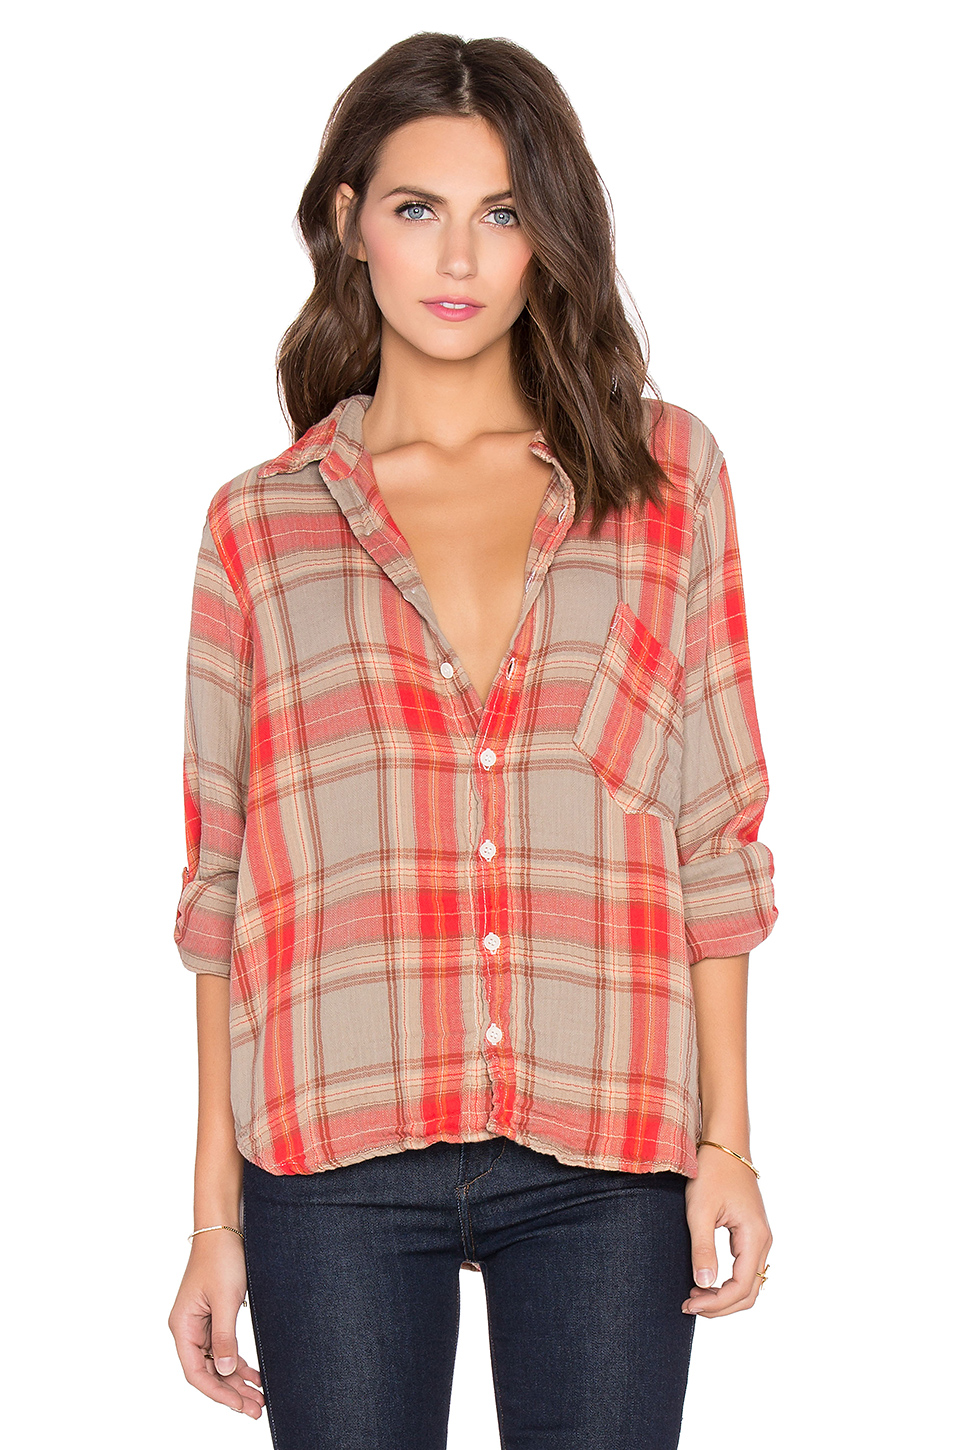 CP SHADES Jay Button Down in Red & Nude Plaid